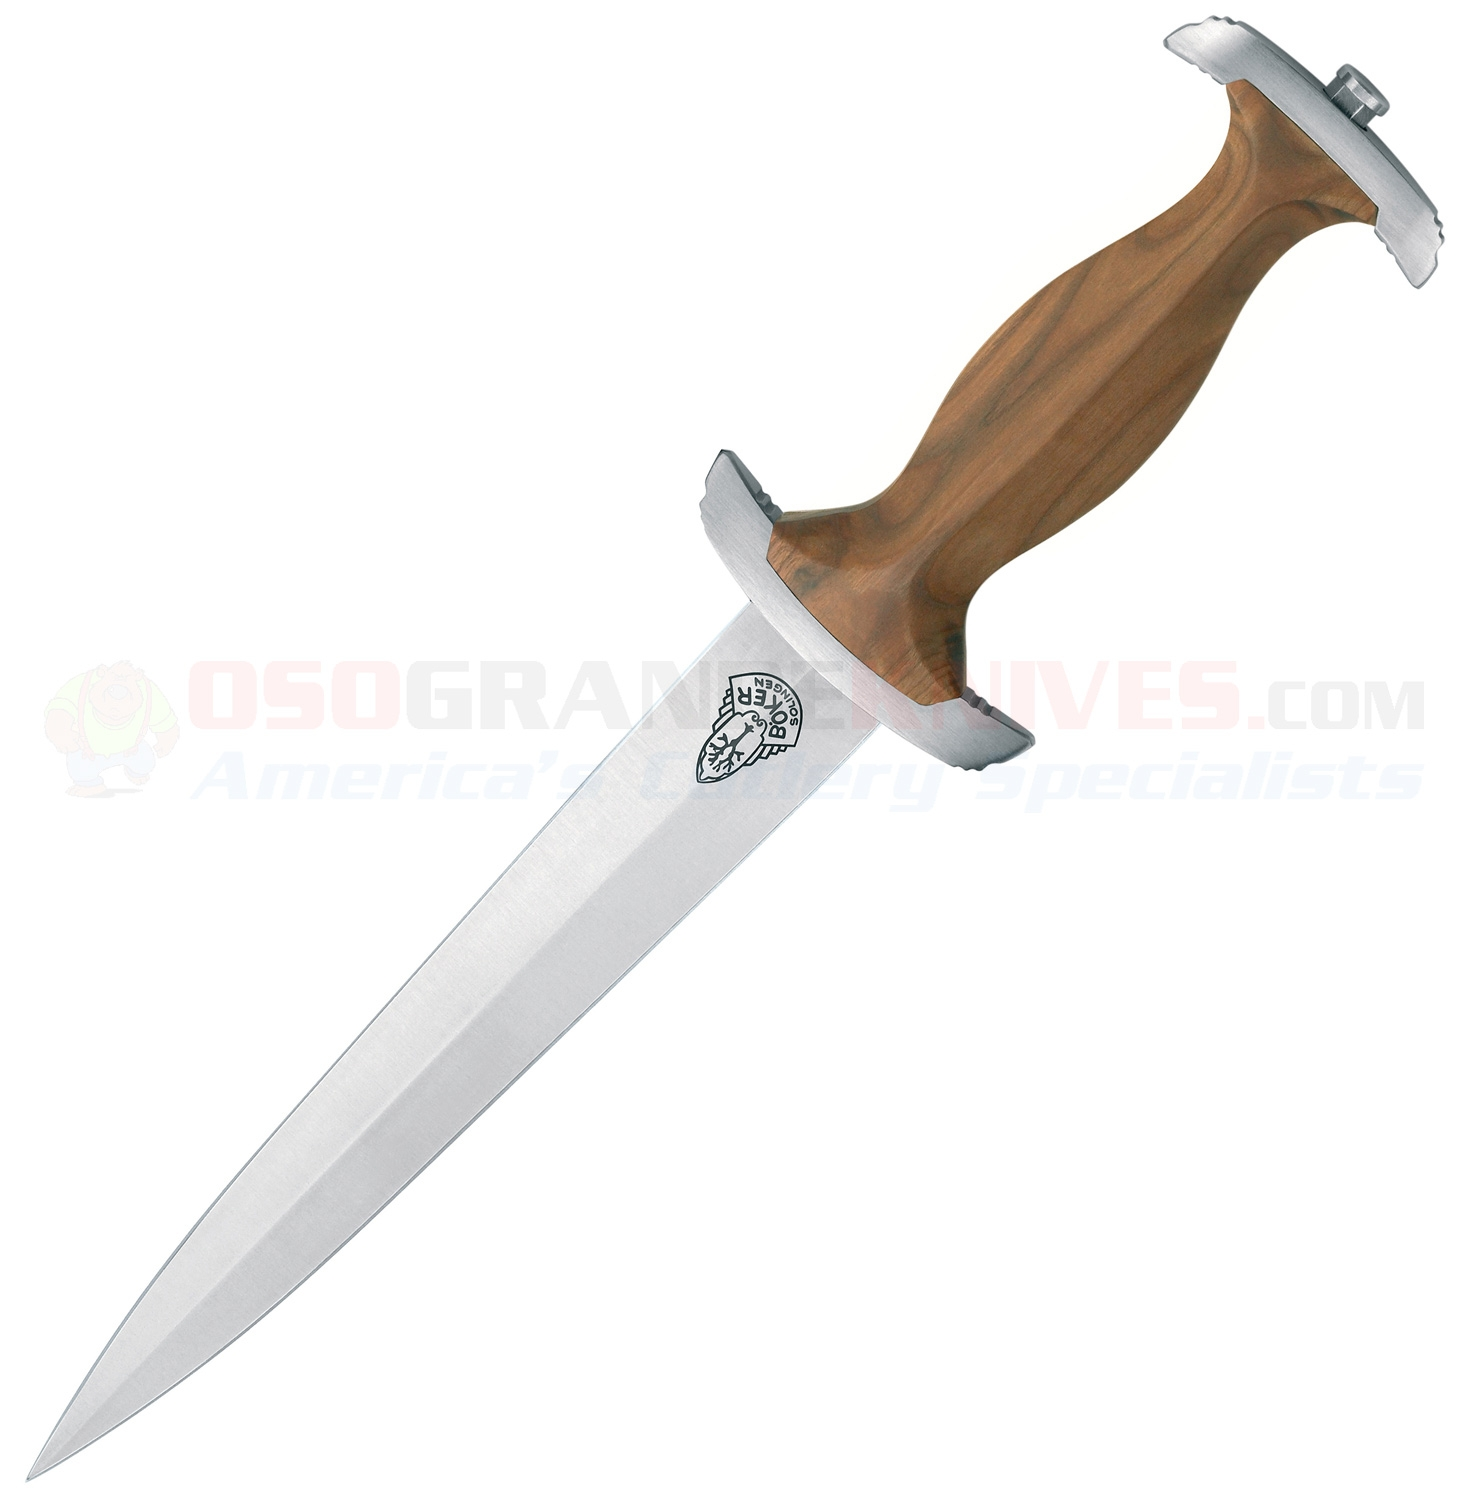 Boker 121550 Swiss Dagger, Cherry Wood Handle